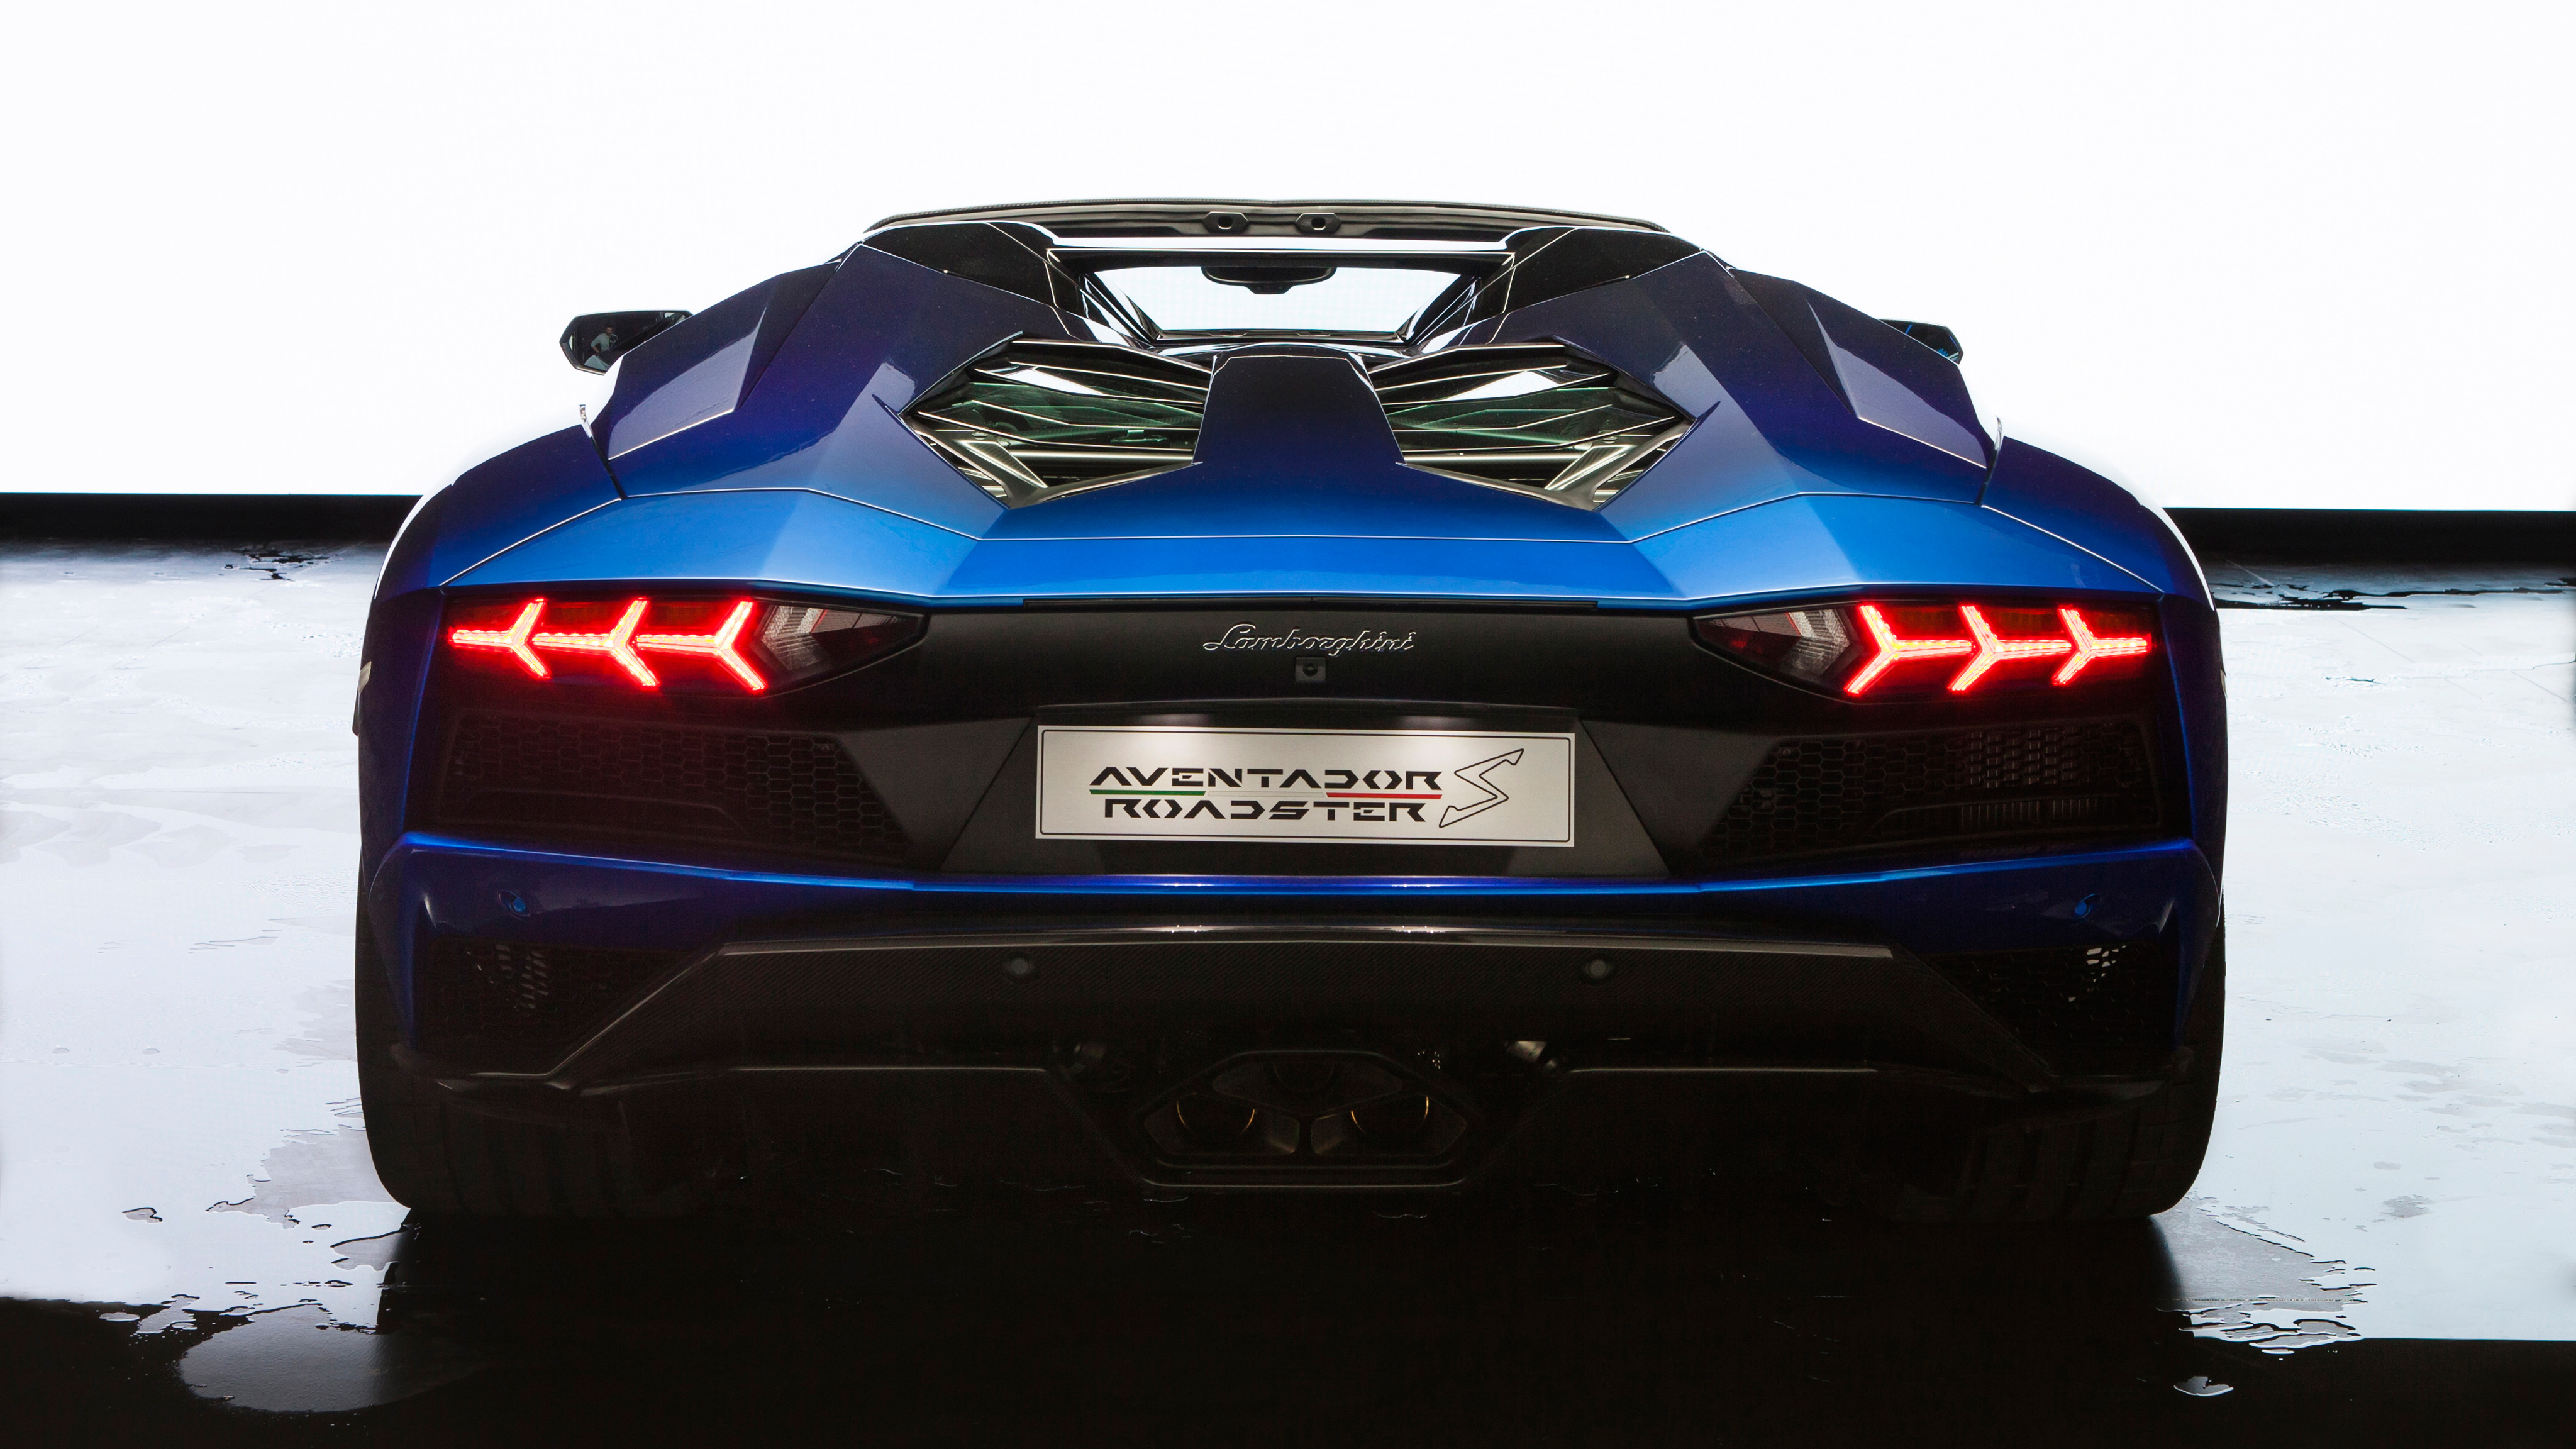 Lamborghini Aventador S Roadster 50th Anniversary Japan 4K 2017 Wallpapers